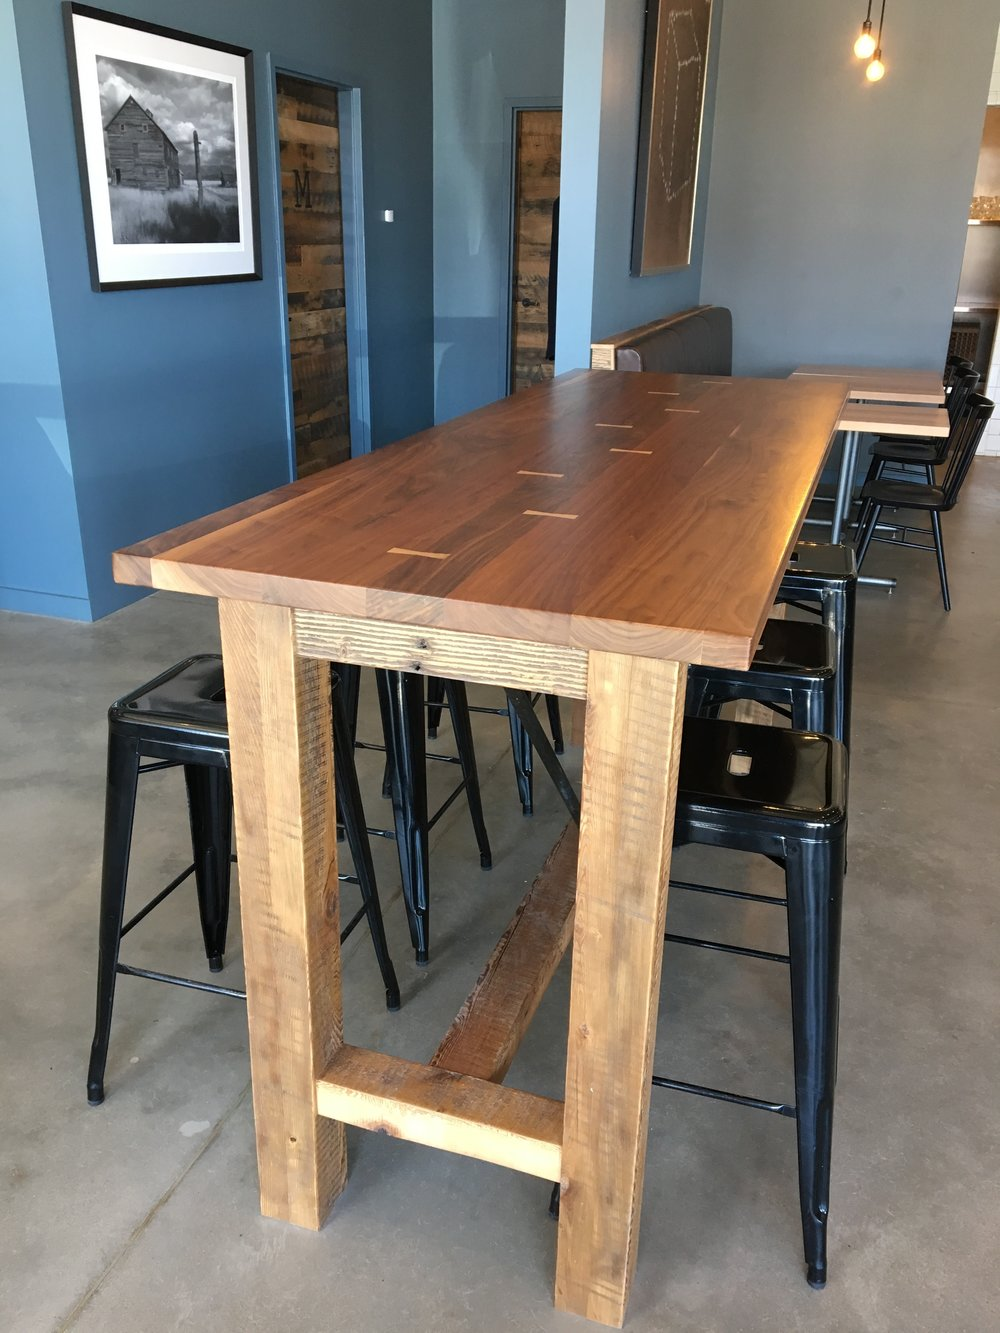 Bar height table with contrasting bow ties